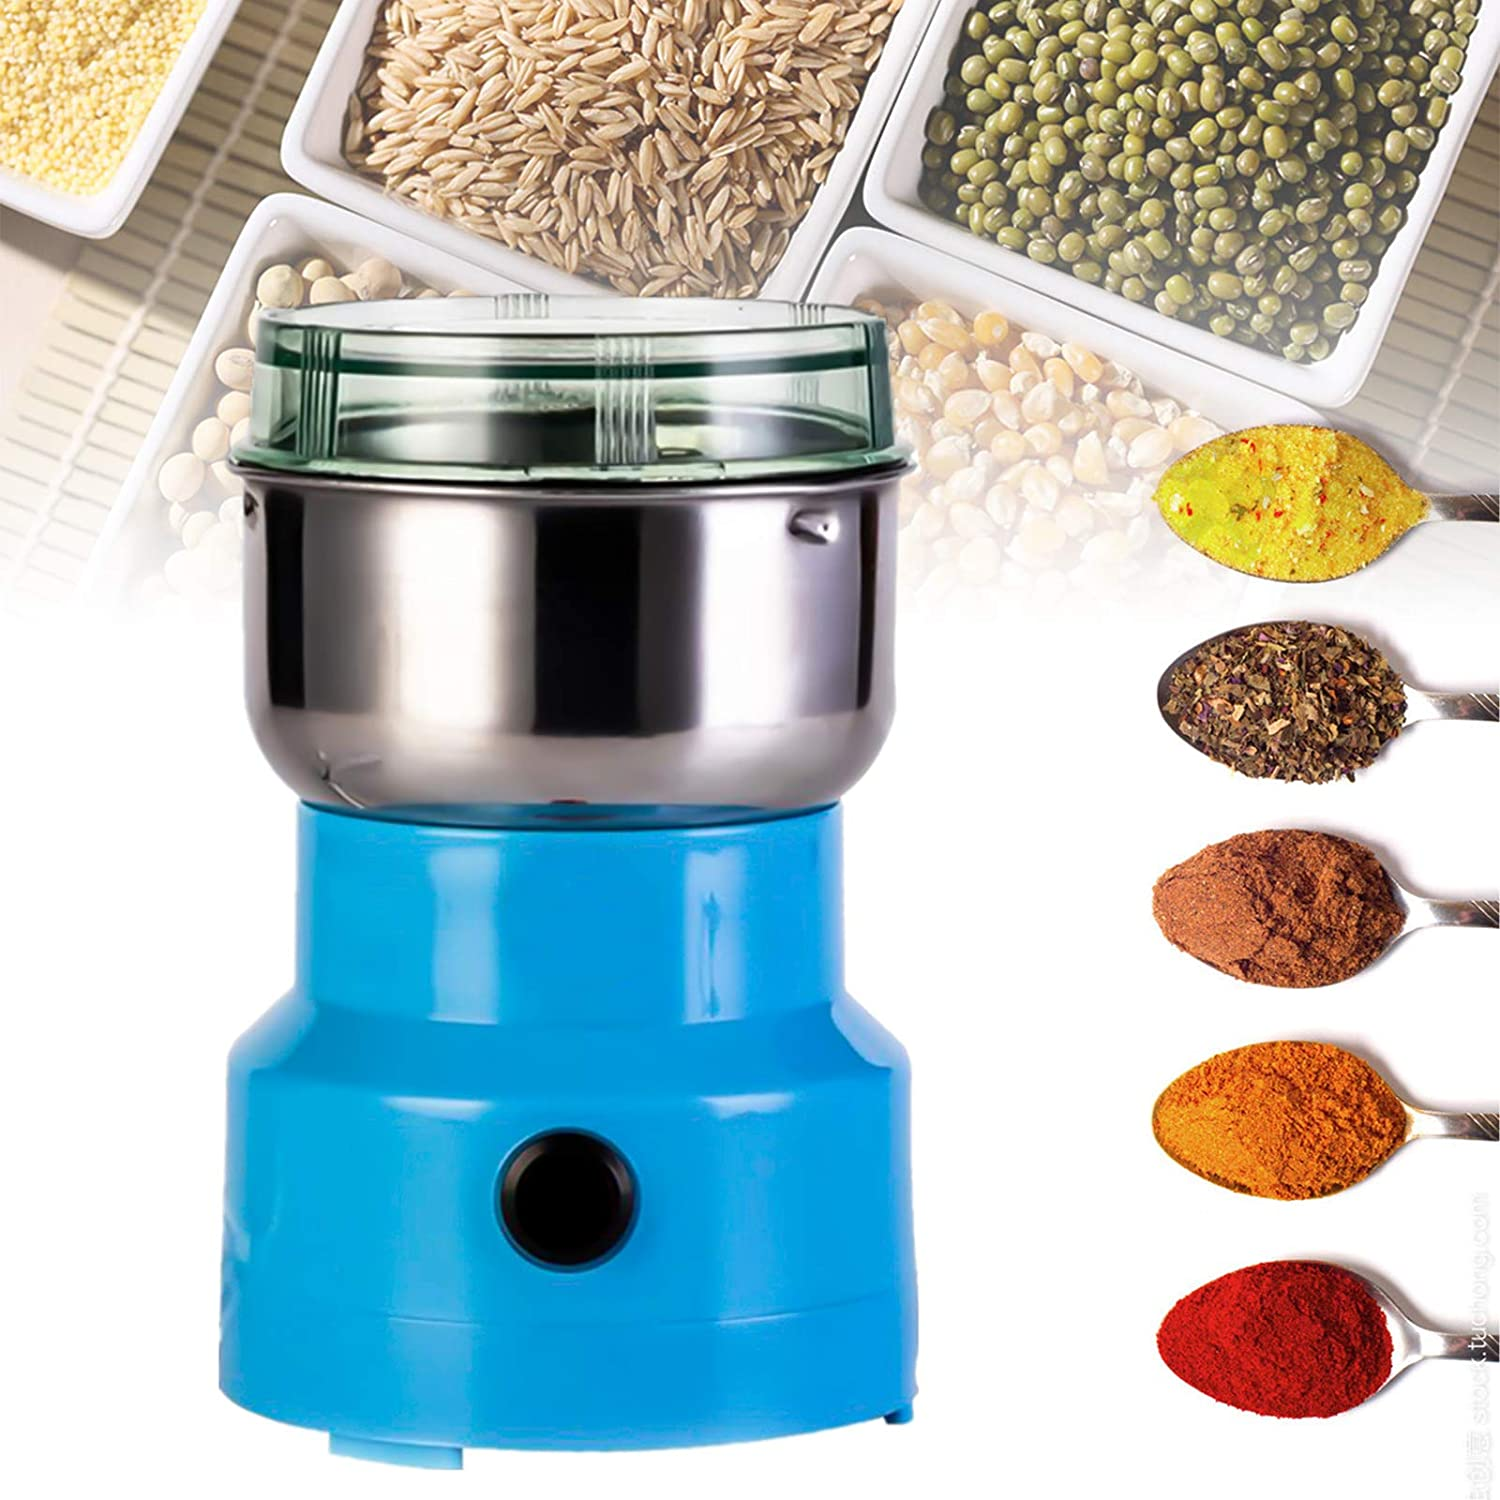 Asionper Multifunction Smash Machine Grinder Household Electric Grain Grinder Ultra Fine Dry Food Coffee Bean Grinder Seasonings Spices Mill Powder for Cereal/Spice/Herb/Cereal/Beans/Pet Food Blue